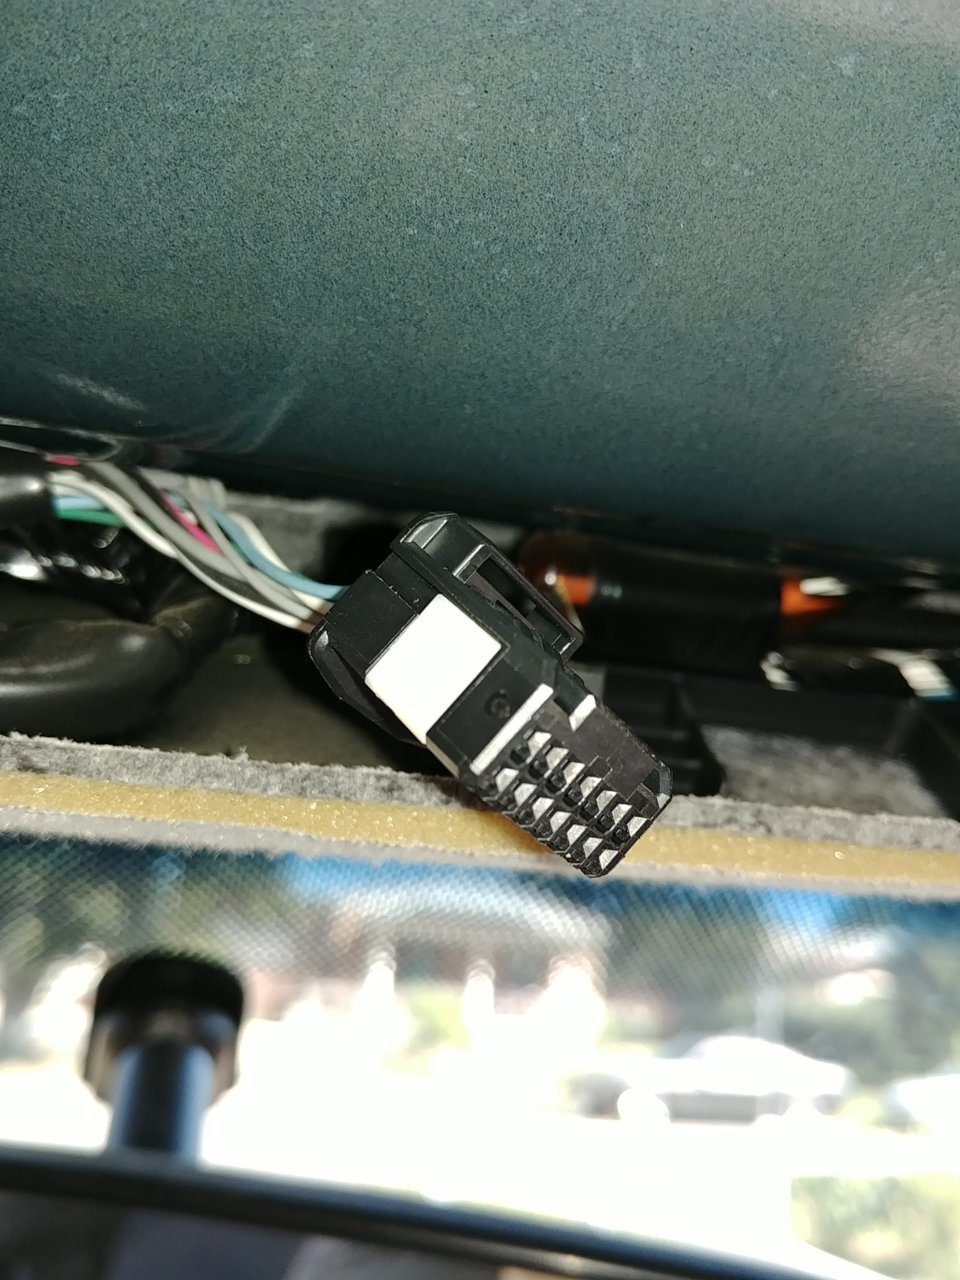 07 Tundra Pre-Wired Backup Camera and Monitor Plug ...